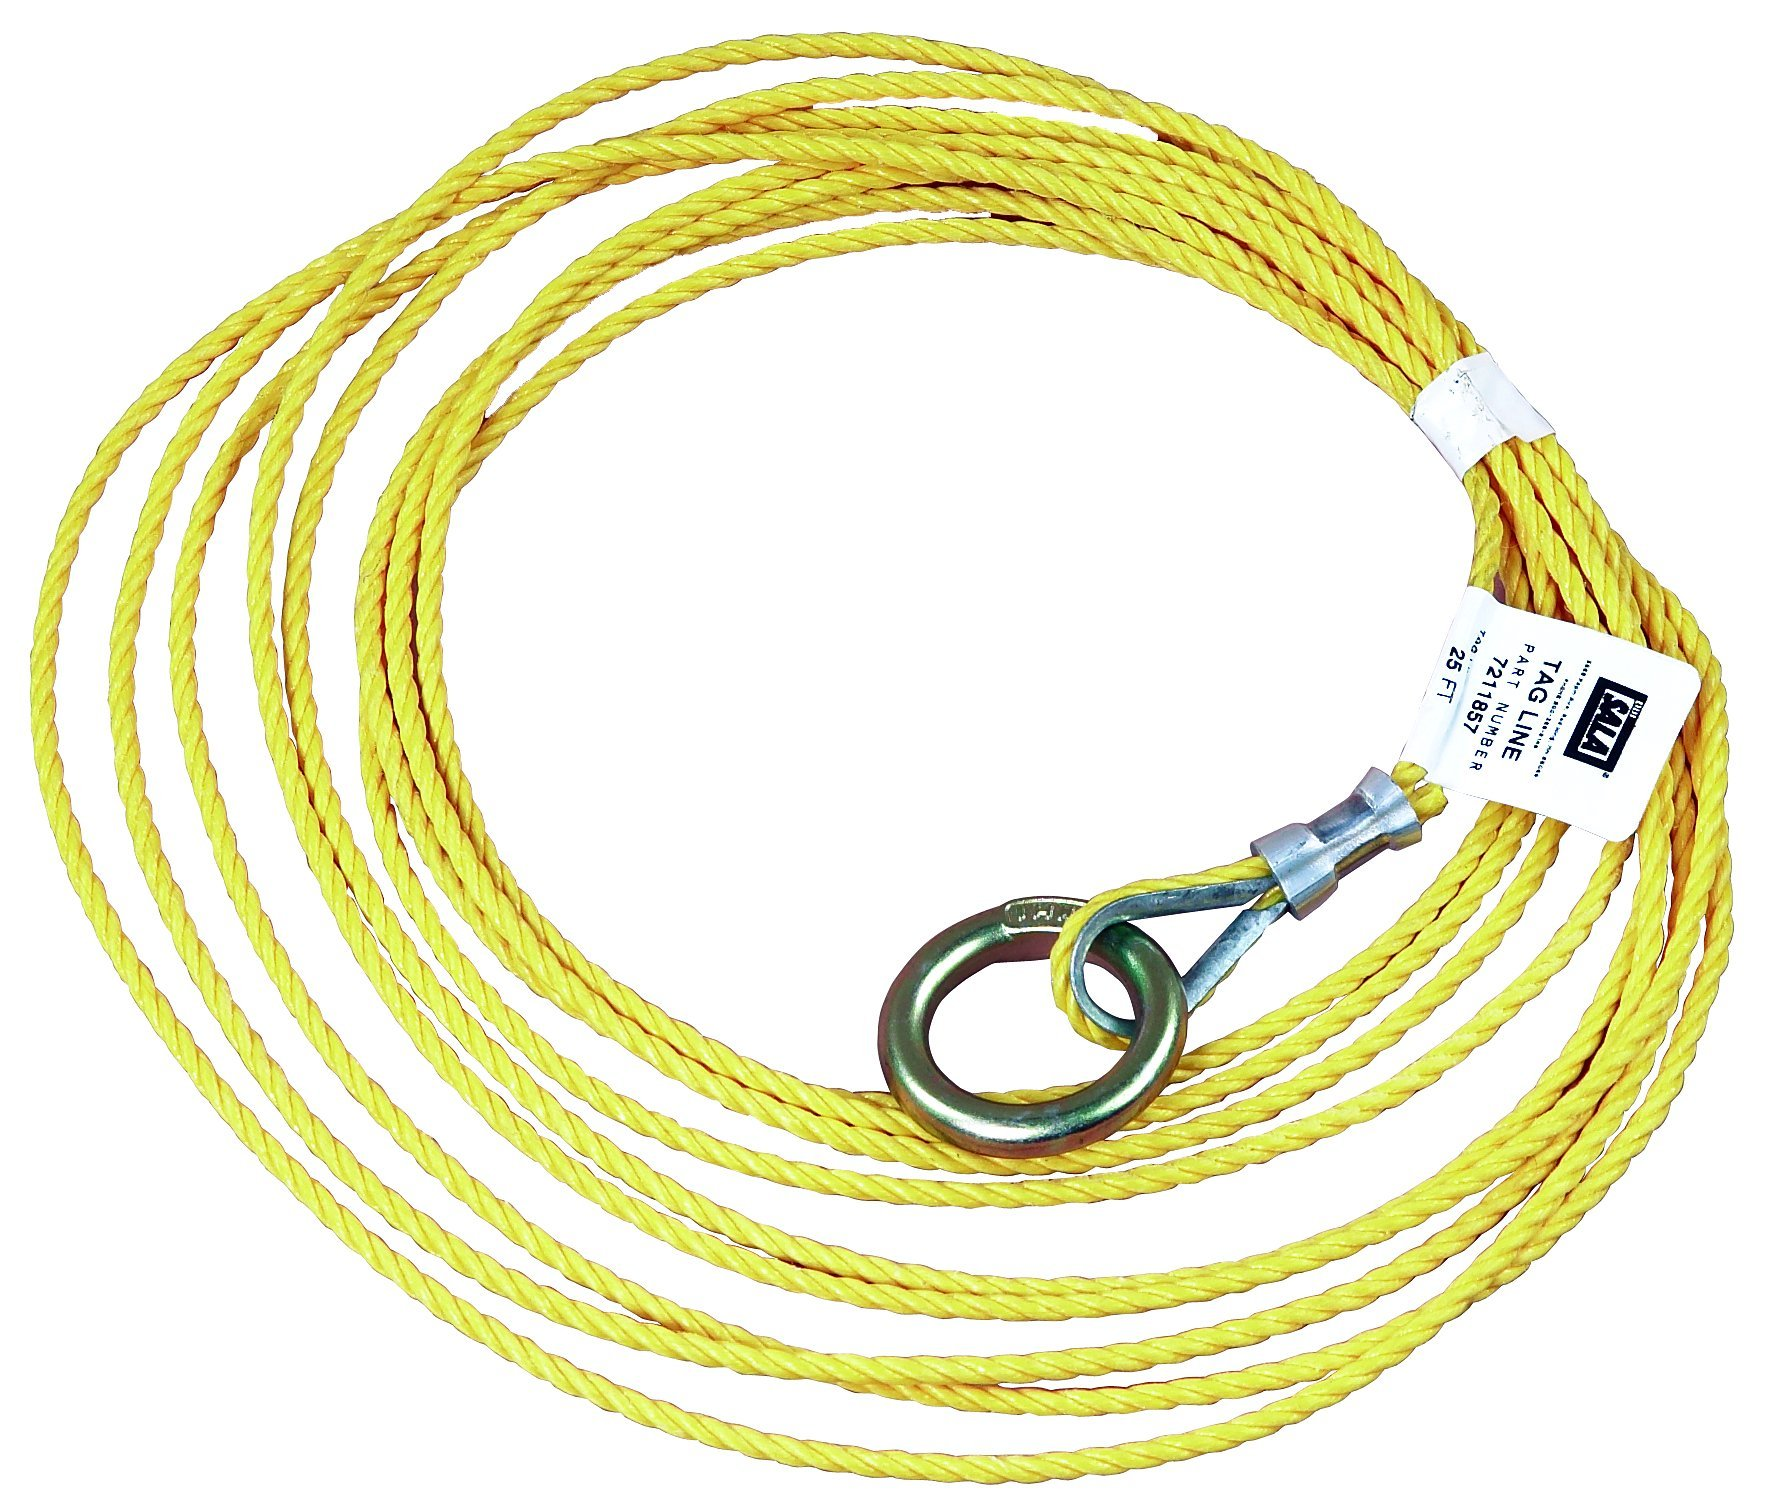 3M DBI-SALA 7211857 Tagline, For Self Retracting Lifeline, 25', 3/16'' Polypropylene Rope, with O-Ring At One End, Yellow